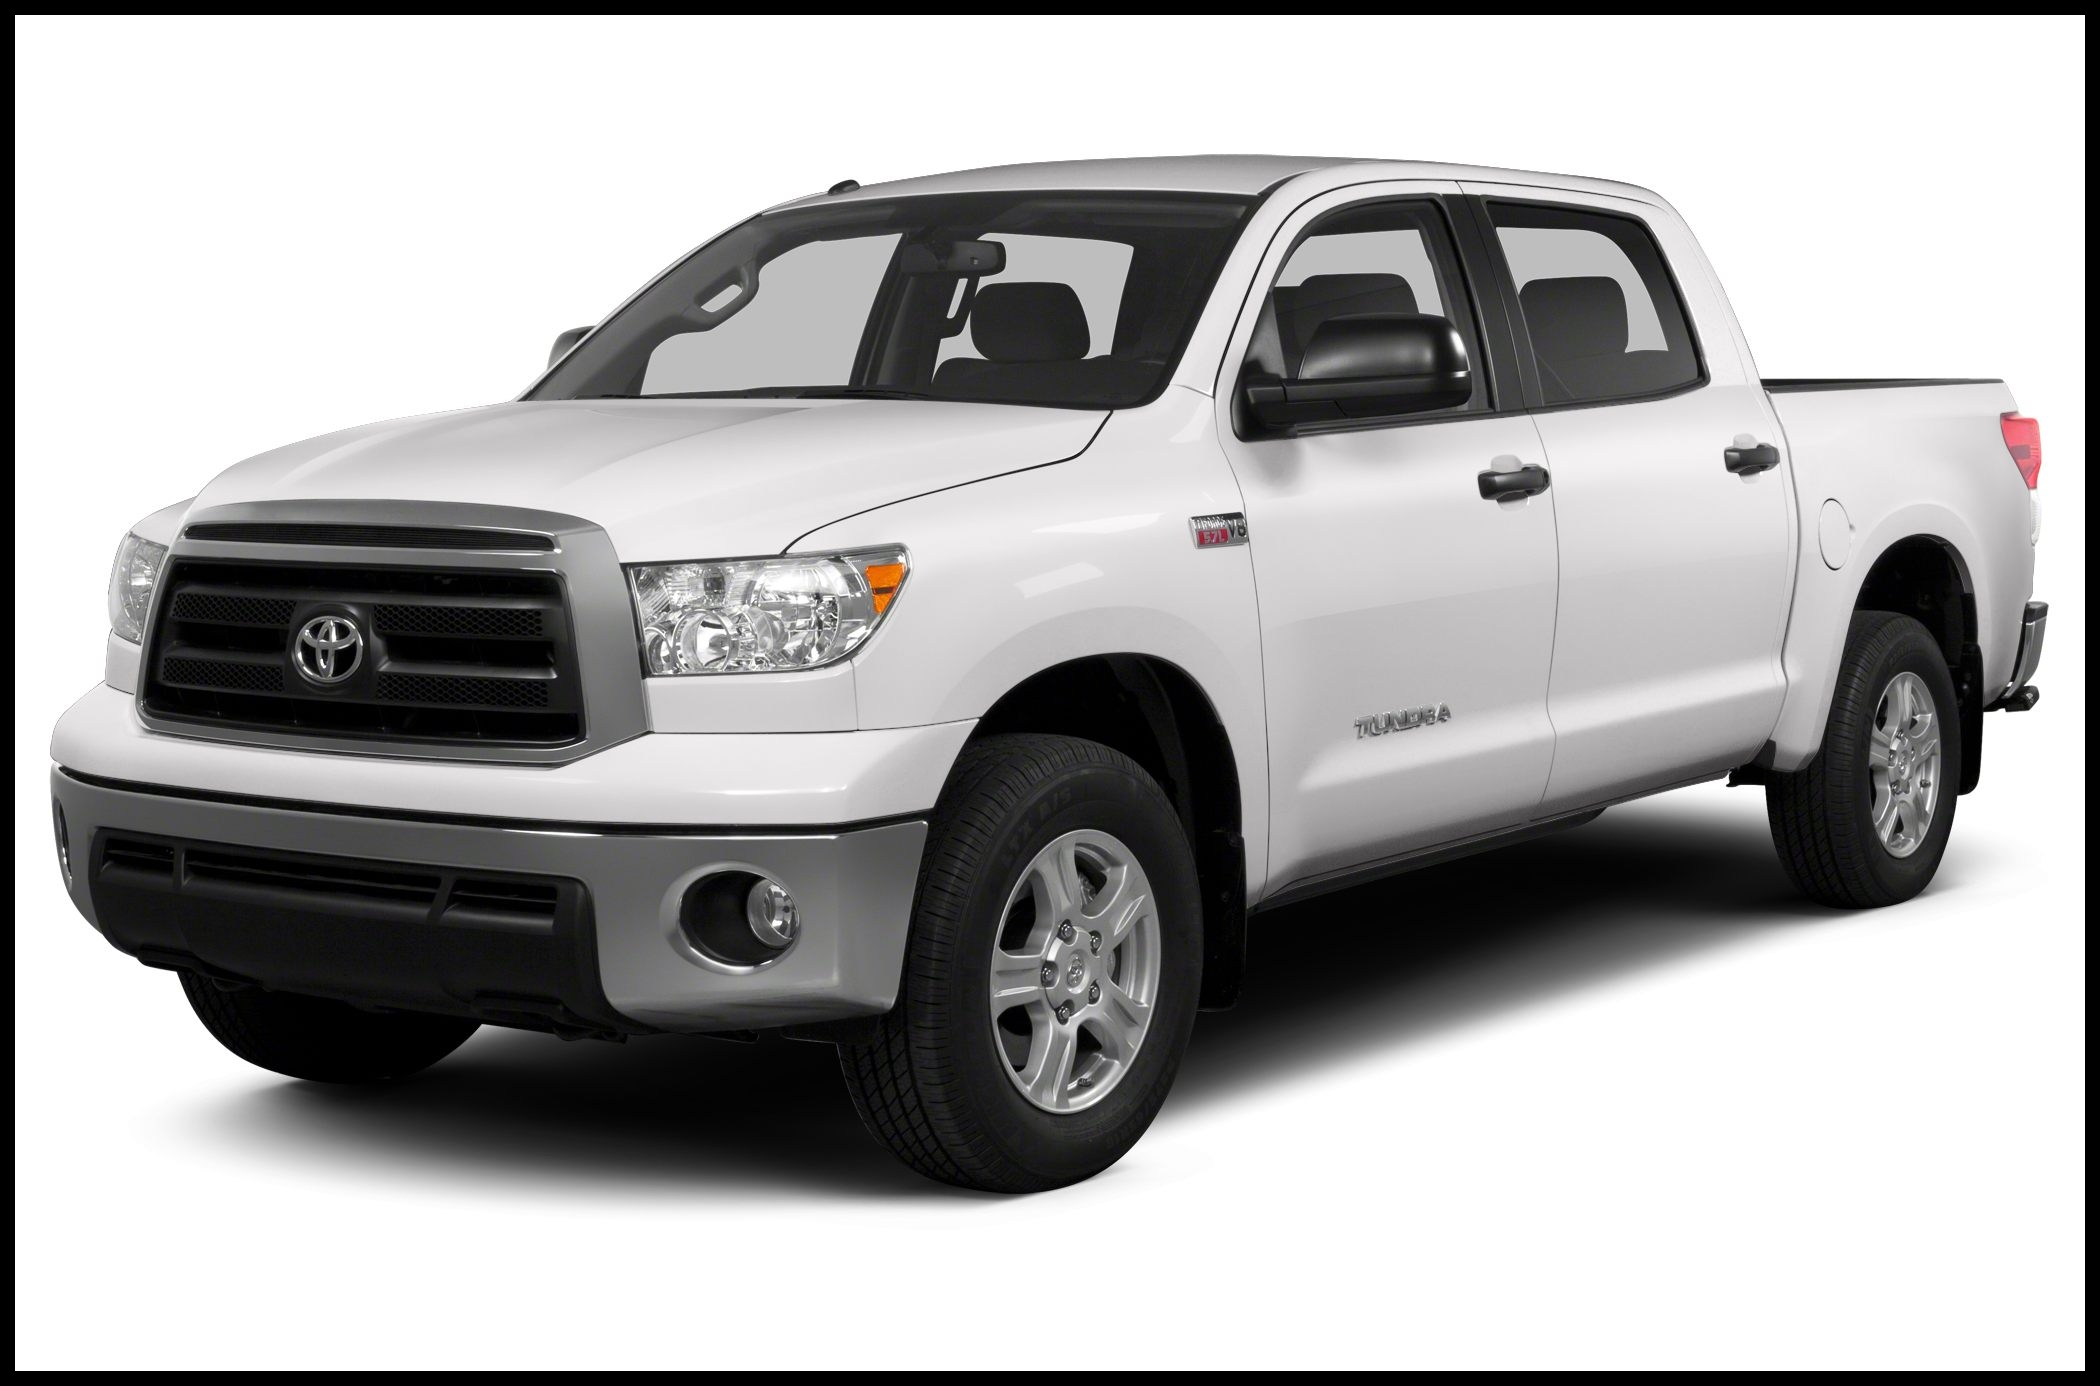 2013 Toyota Tundra Platinum 5 7L V8 4x4 Crew Max 5 6 ft box 145 7 in WB Pricing and Options